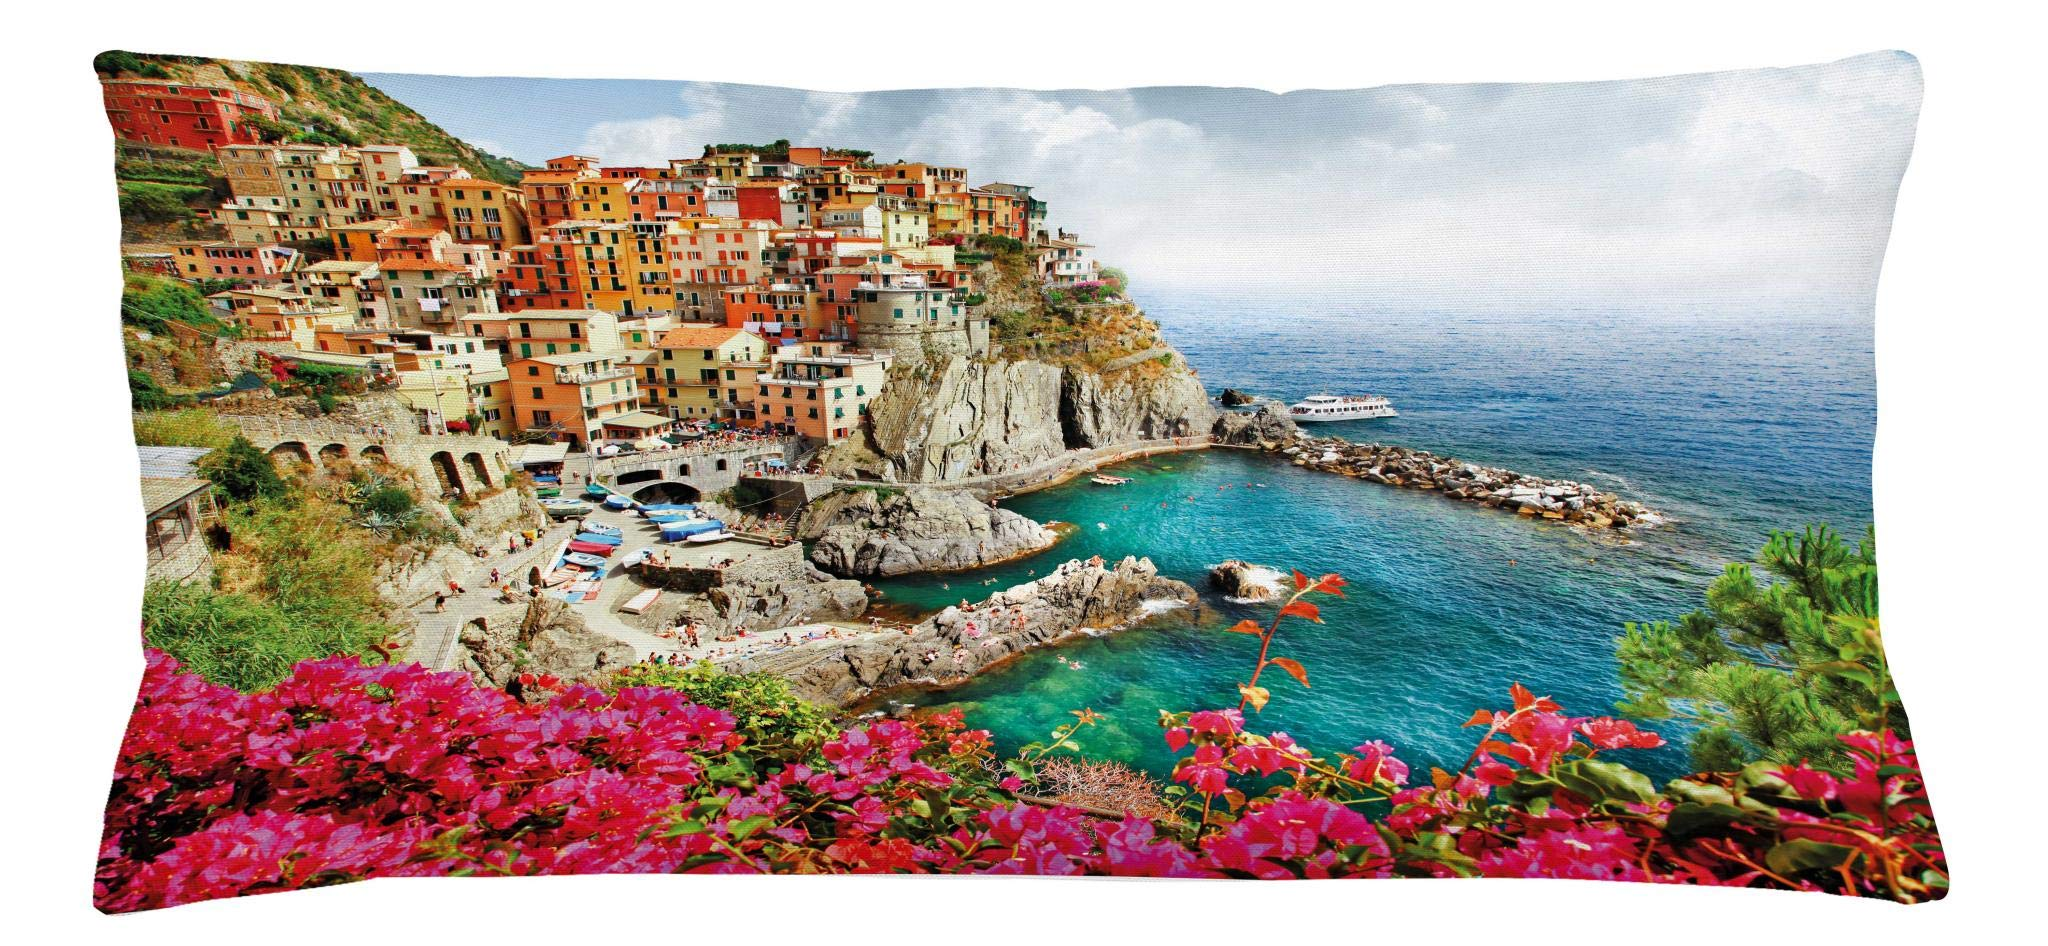 Ambesonne Italy Throw Pillow Cushion Cover, Monarola Antique Village in Cinque Terre Coastal Panorama Summer Beach Scenic View, Decorative Square Accent Pillow Case, 36 X 16 Inches, Multicolor